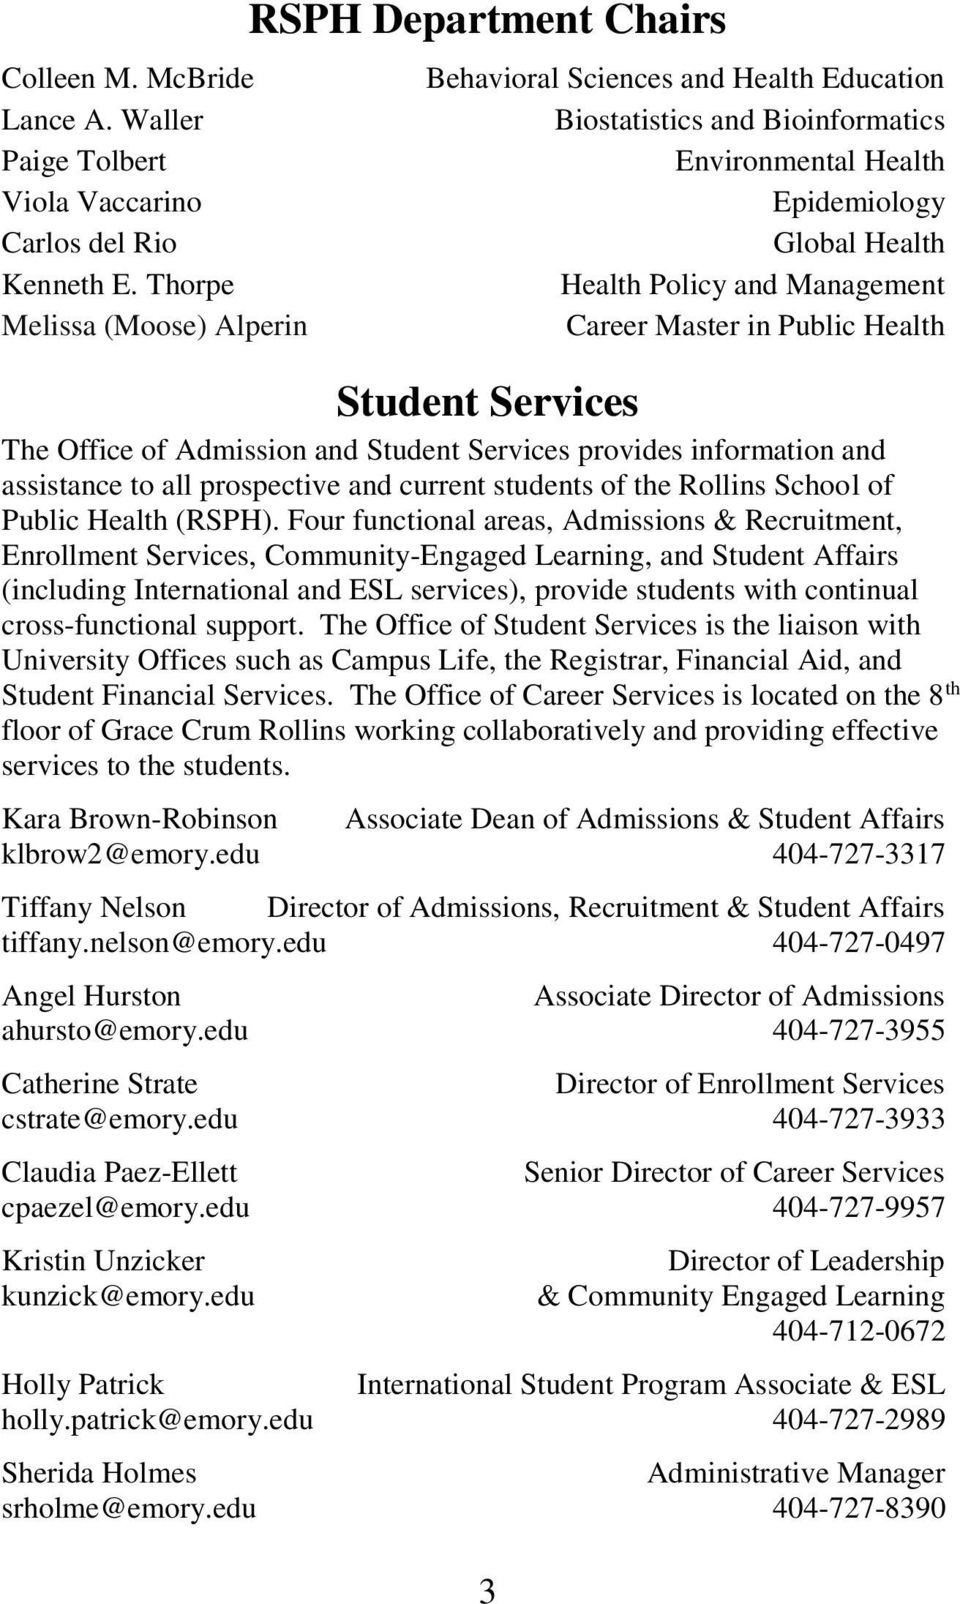 Management Career Master in Public Health Student Services The Office of Admission and Student Services provides information and assistance to all prospective and current students of the Rollins